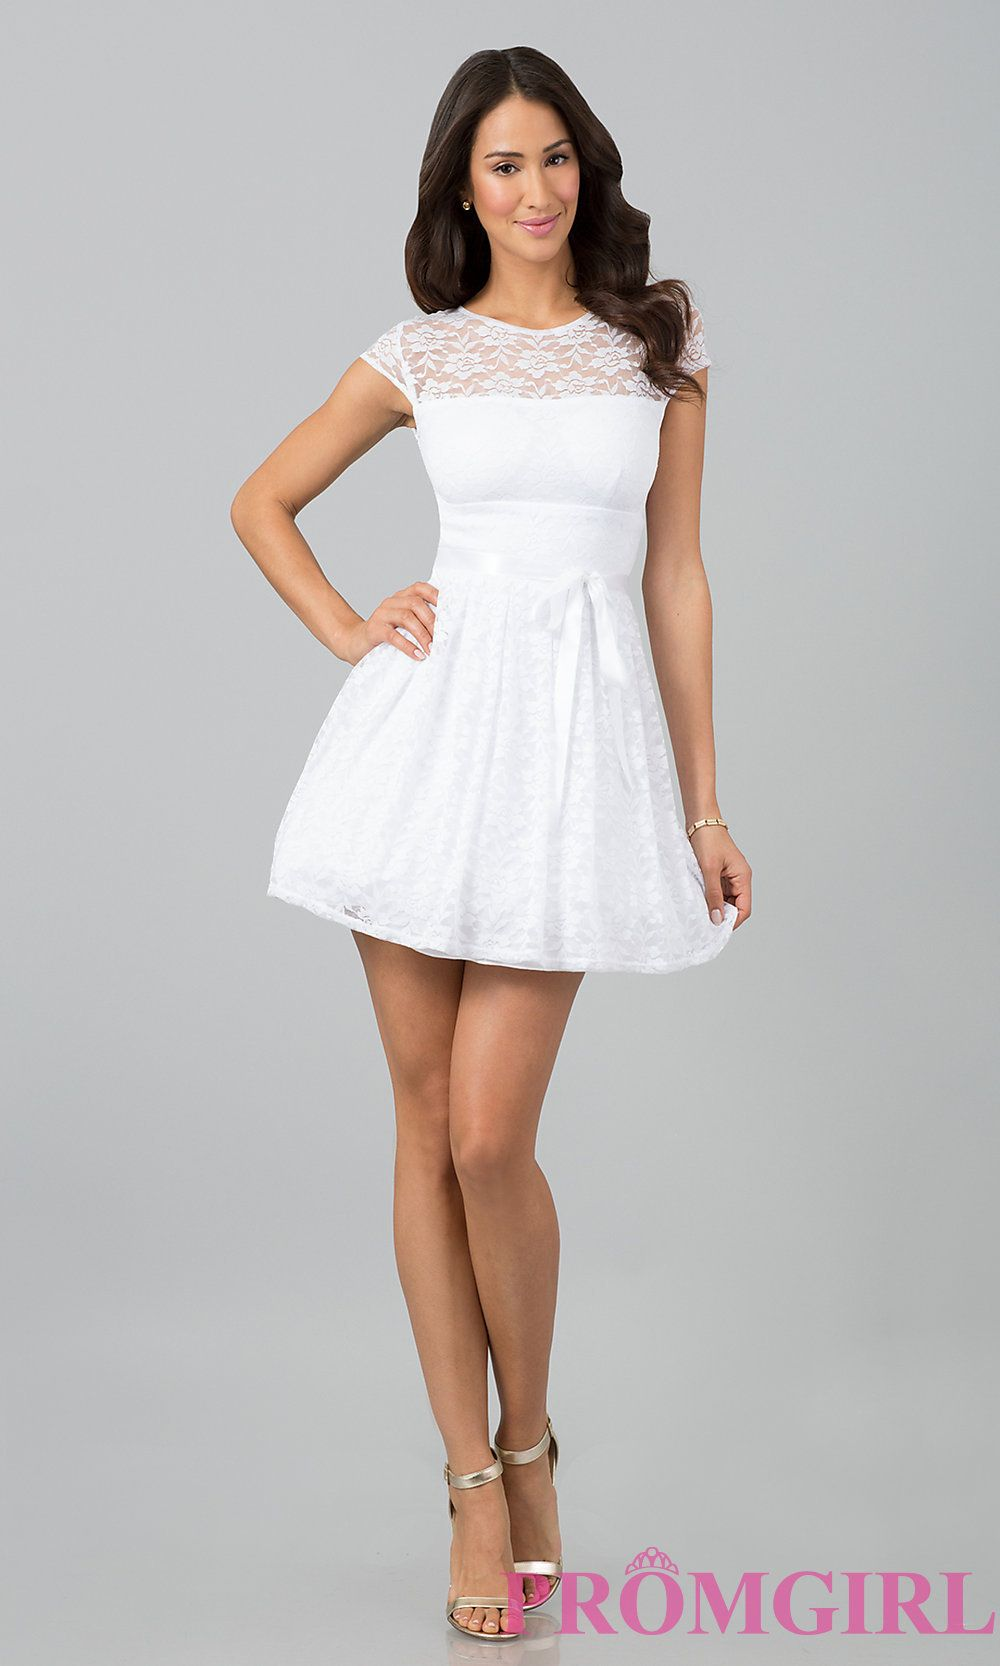 2019 year look- Casual white dress graduation pinterest